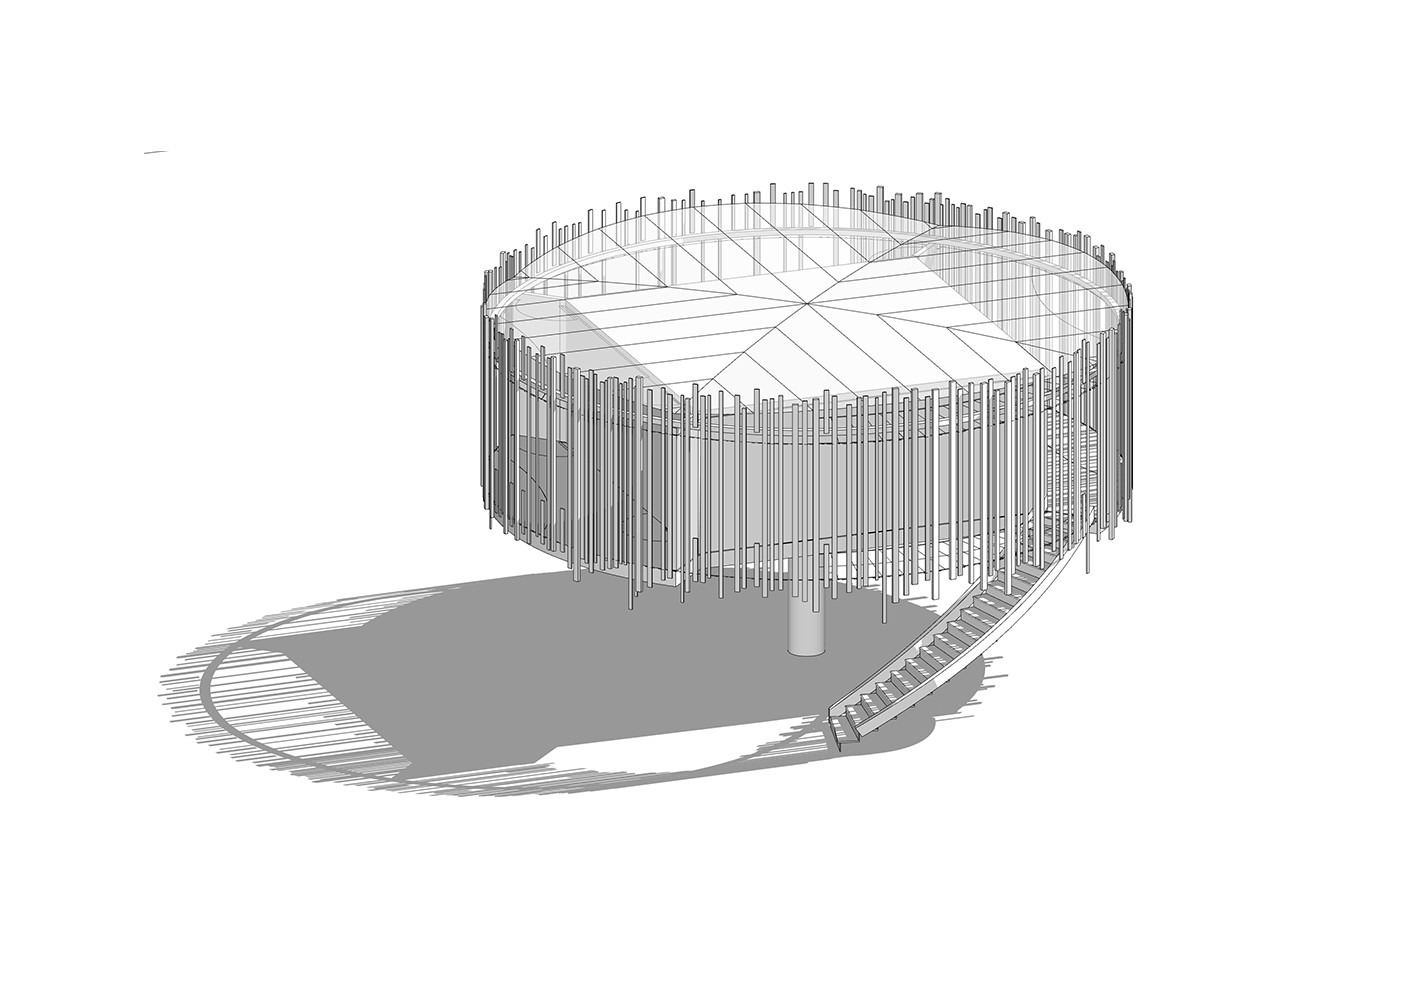 Axonometric view of Castan treehouse